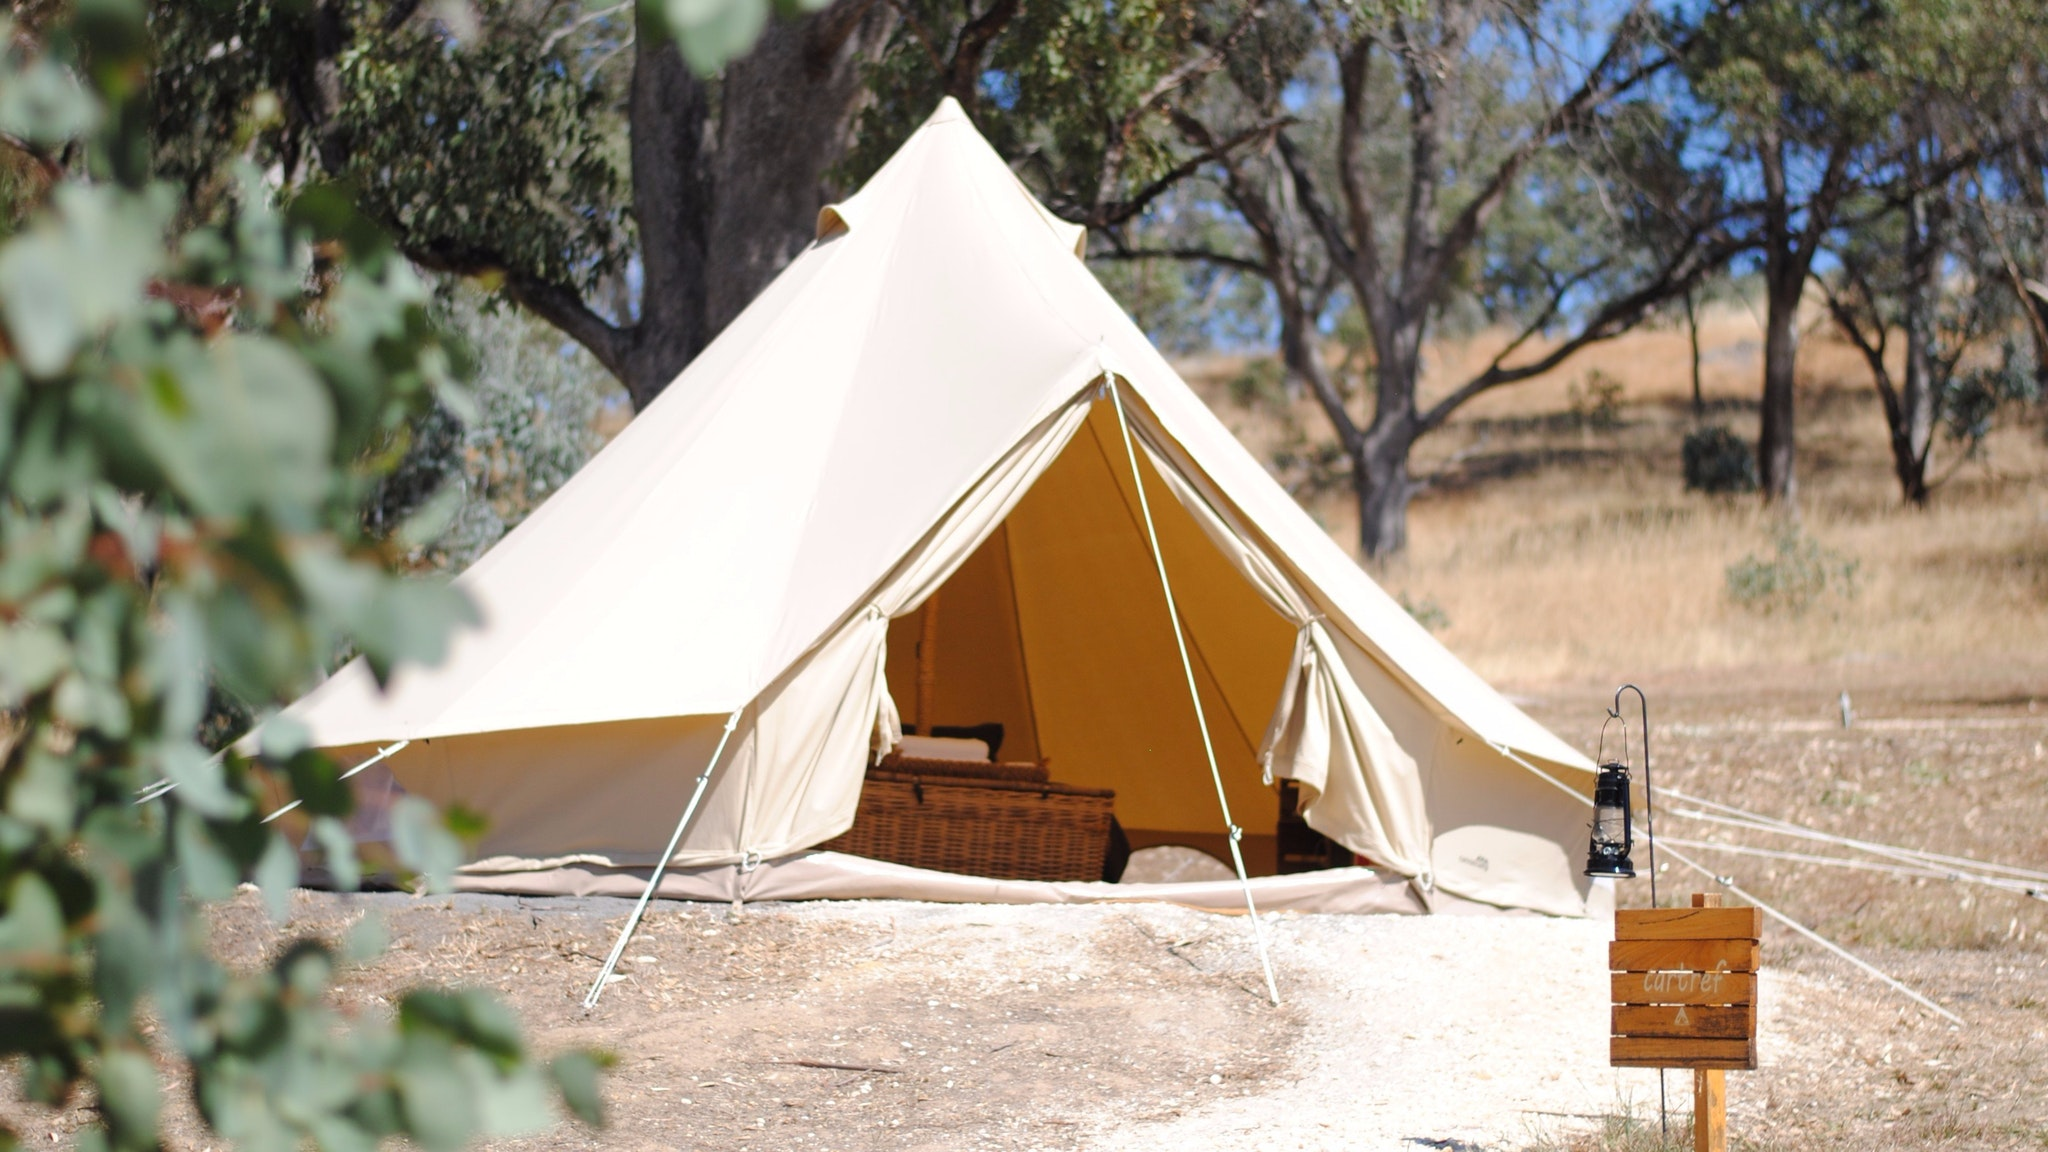 Cosy Tents - Bell Tent & Cosy Tents Accommodation Daylesford u0026 the Macedon Ranges Victoria ...